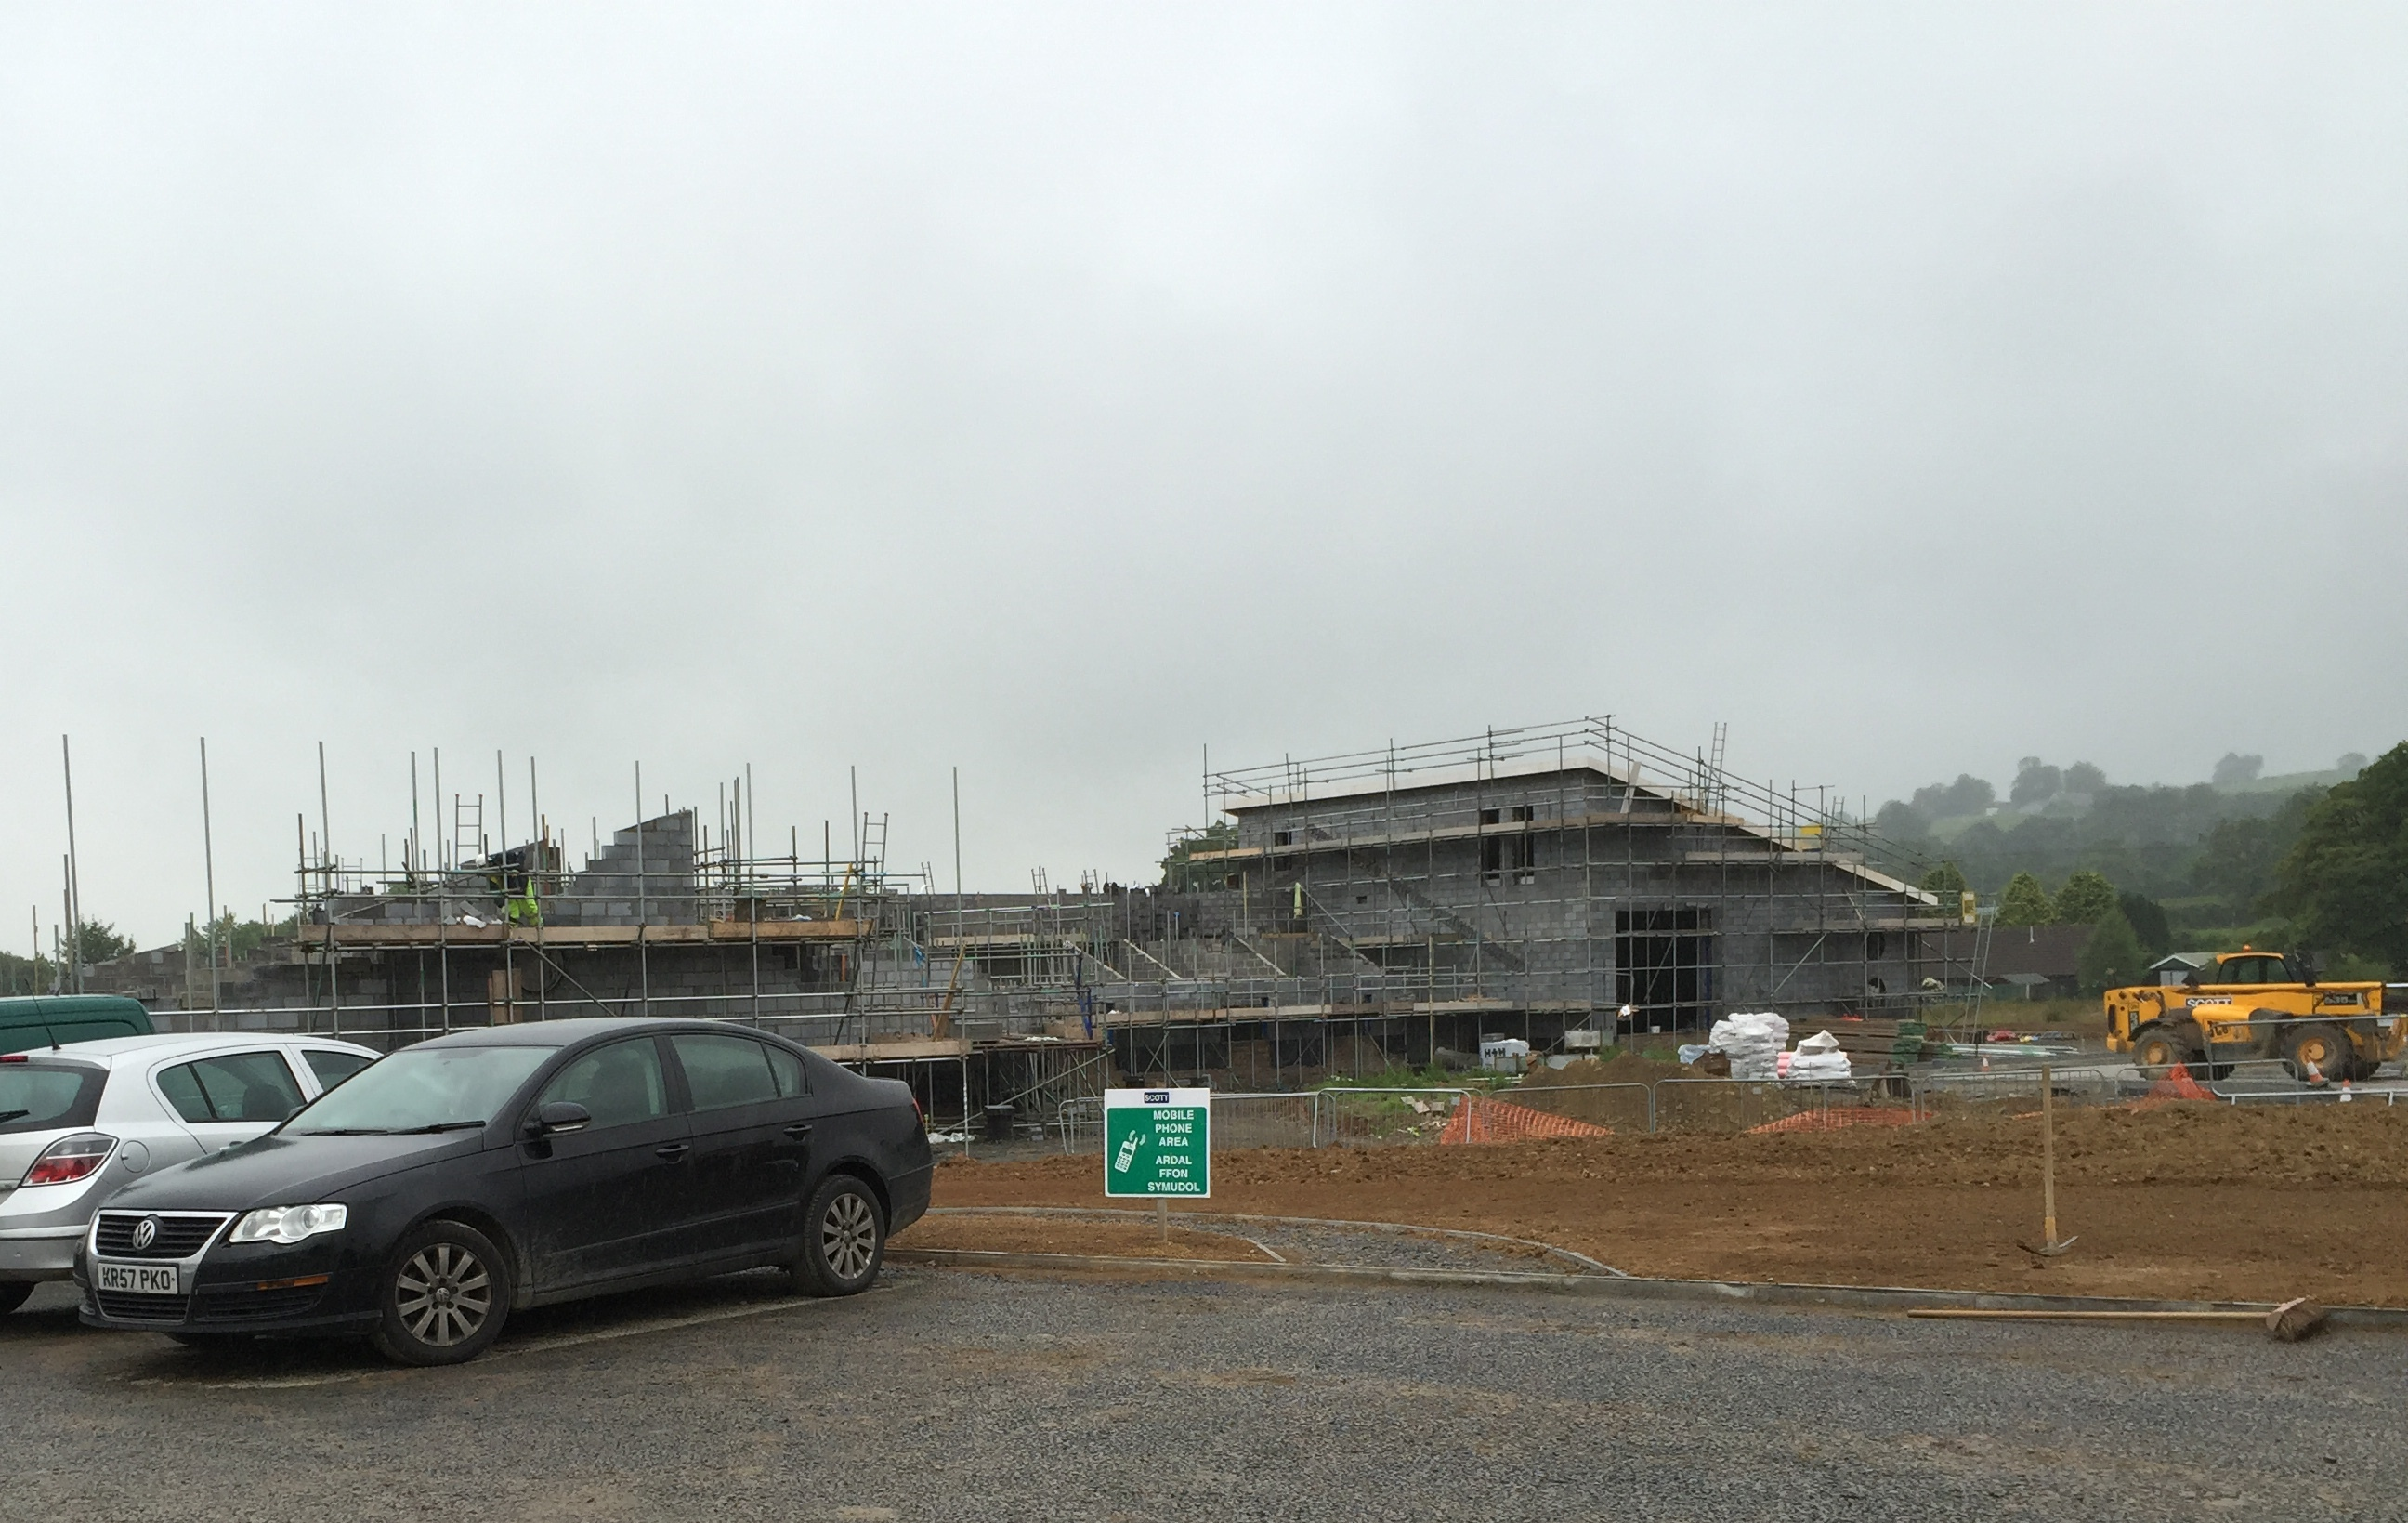 Meanwhile, they're building a new superschool in Drefach